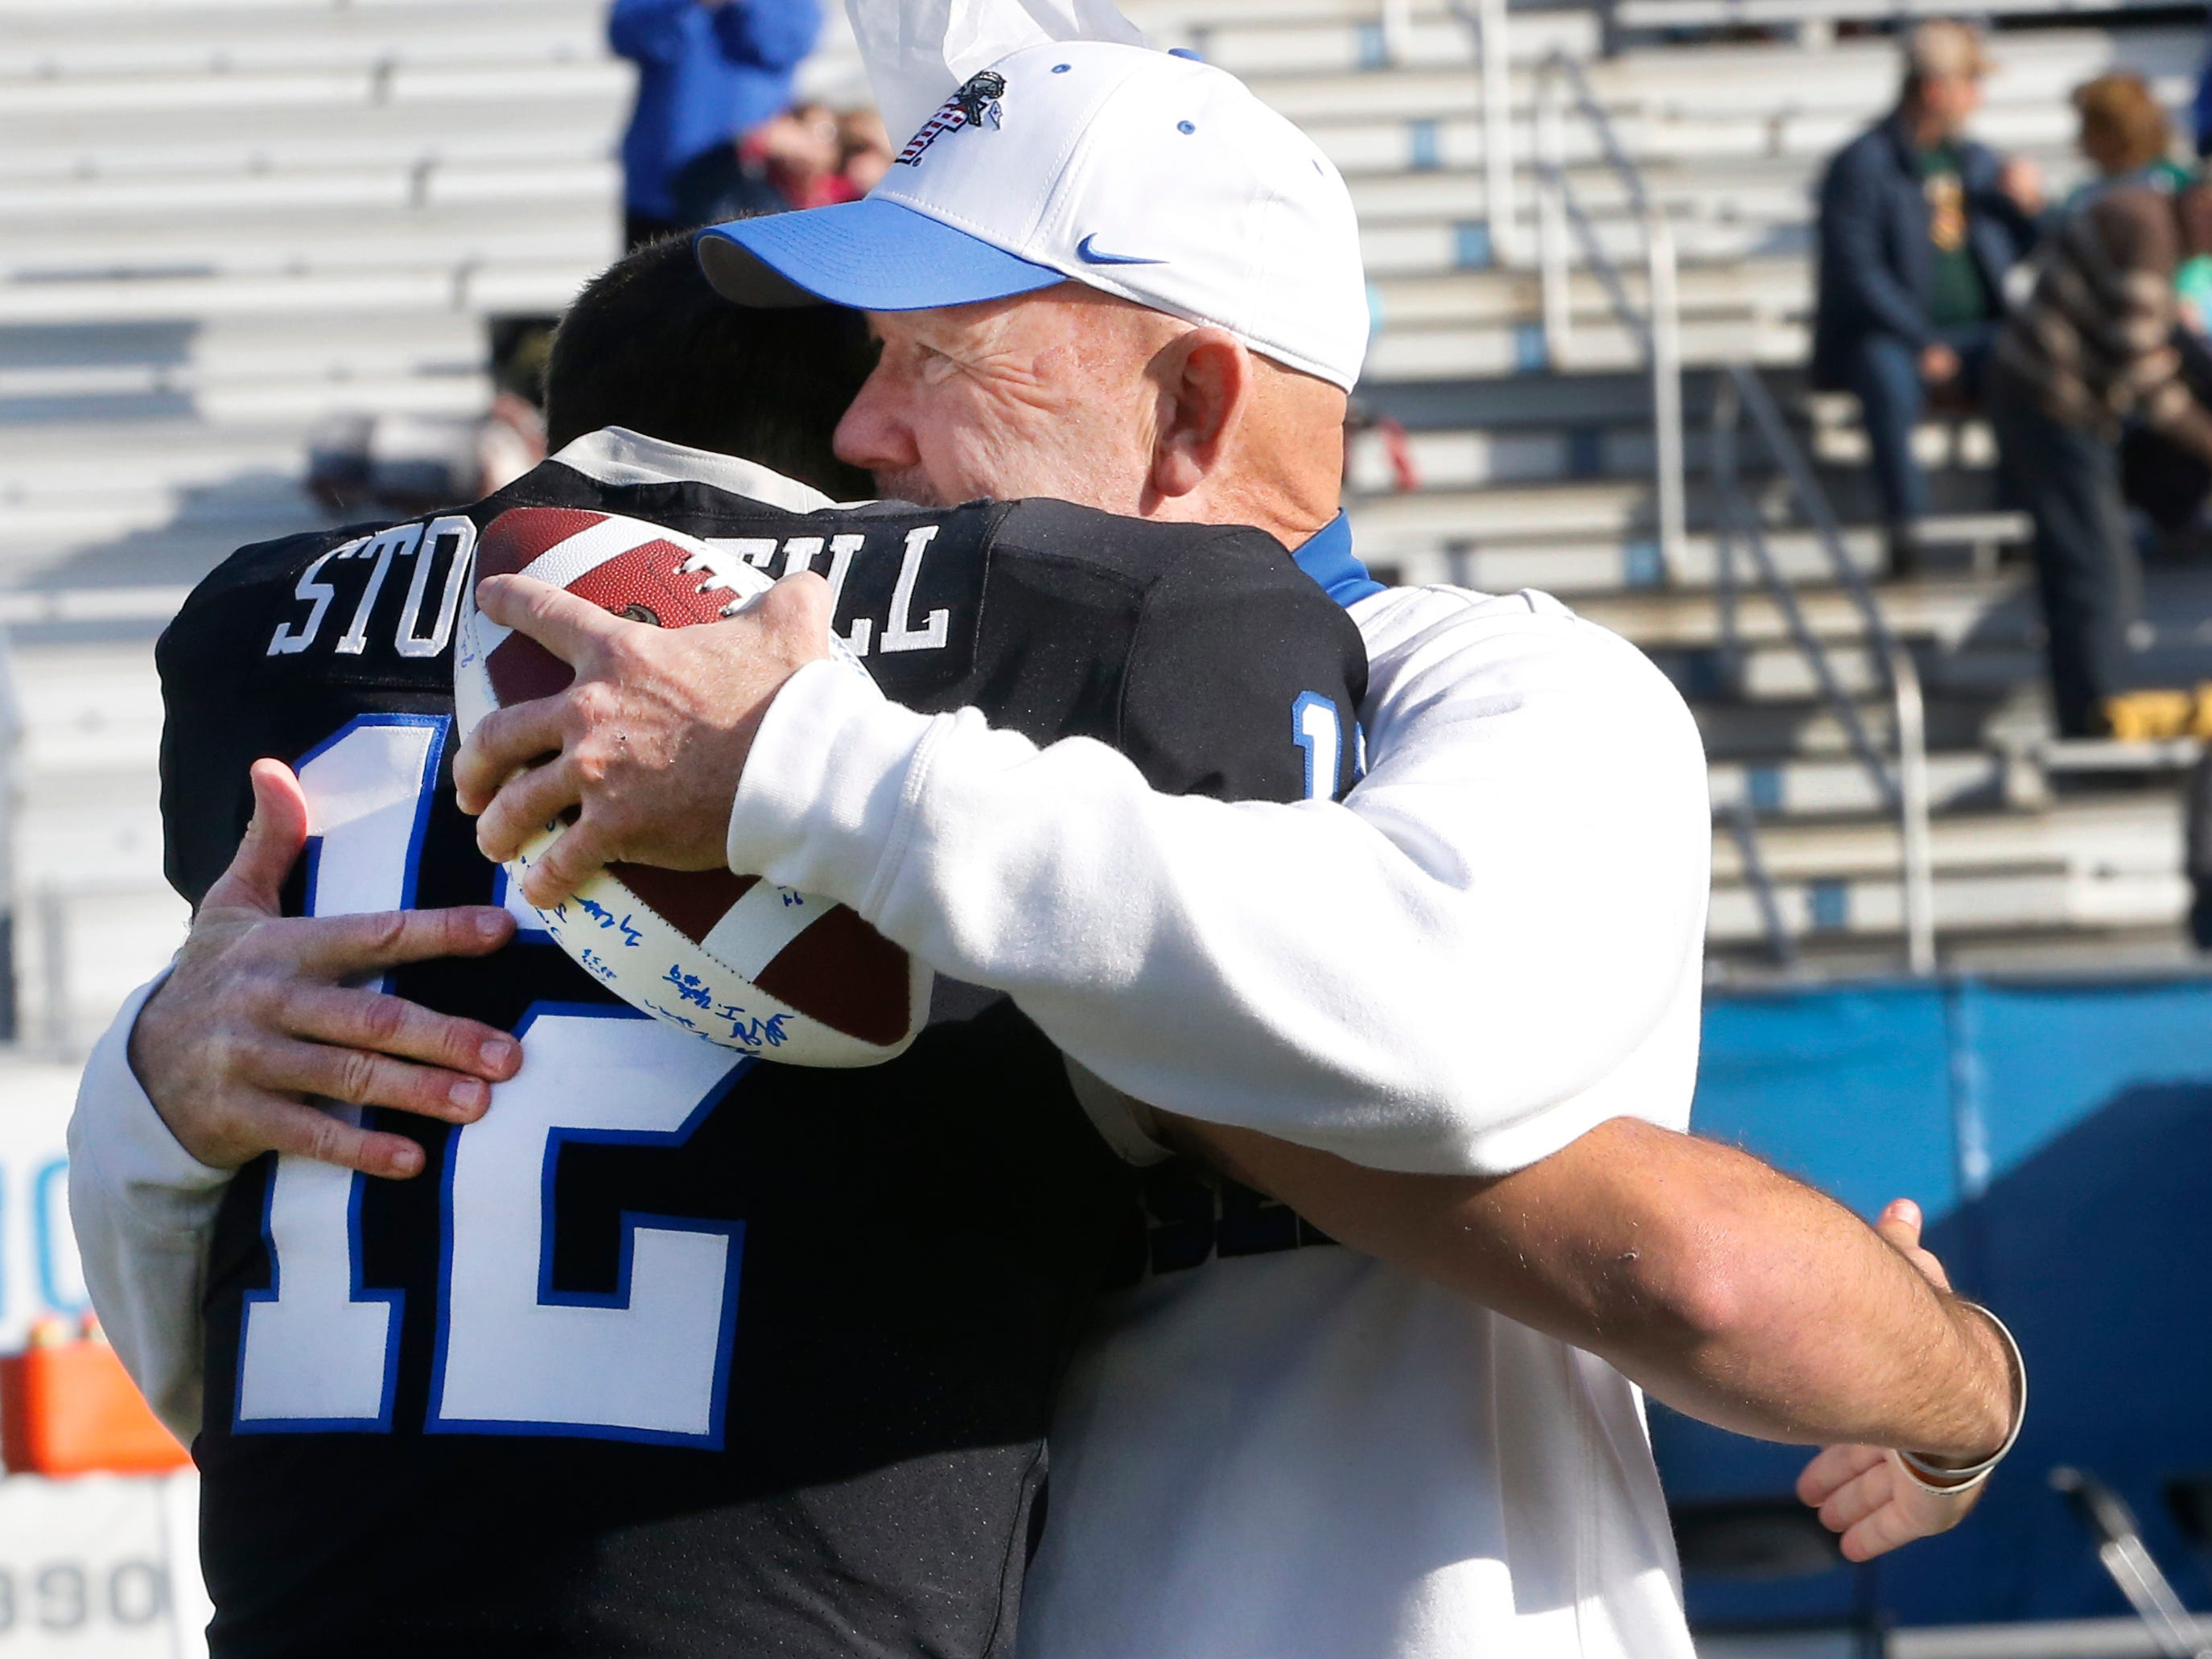 MTSU head football coach Rick Stockstill hugs his son and MTSU quarterback Brent Stockstill as Brent Stockstill is honored with the other senior football players on Senior Day, before the start of the game against UAB at MTSU, on Saturday, Sept. 29, 2018.